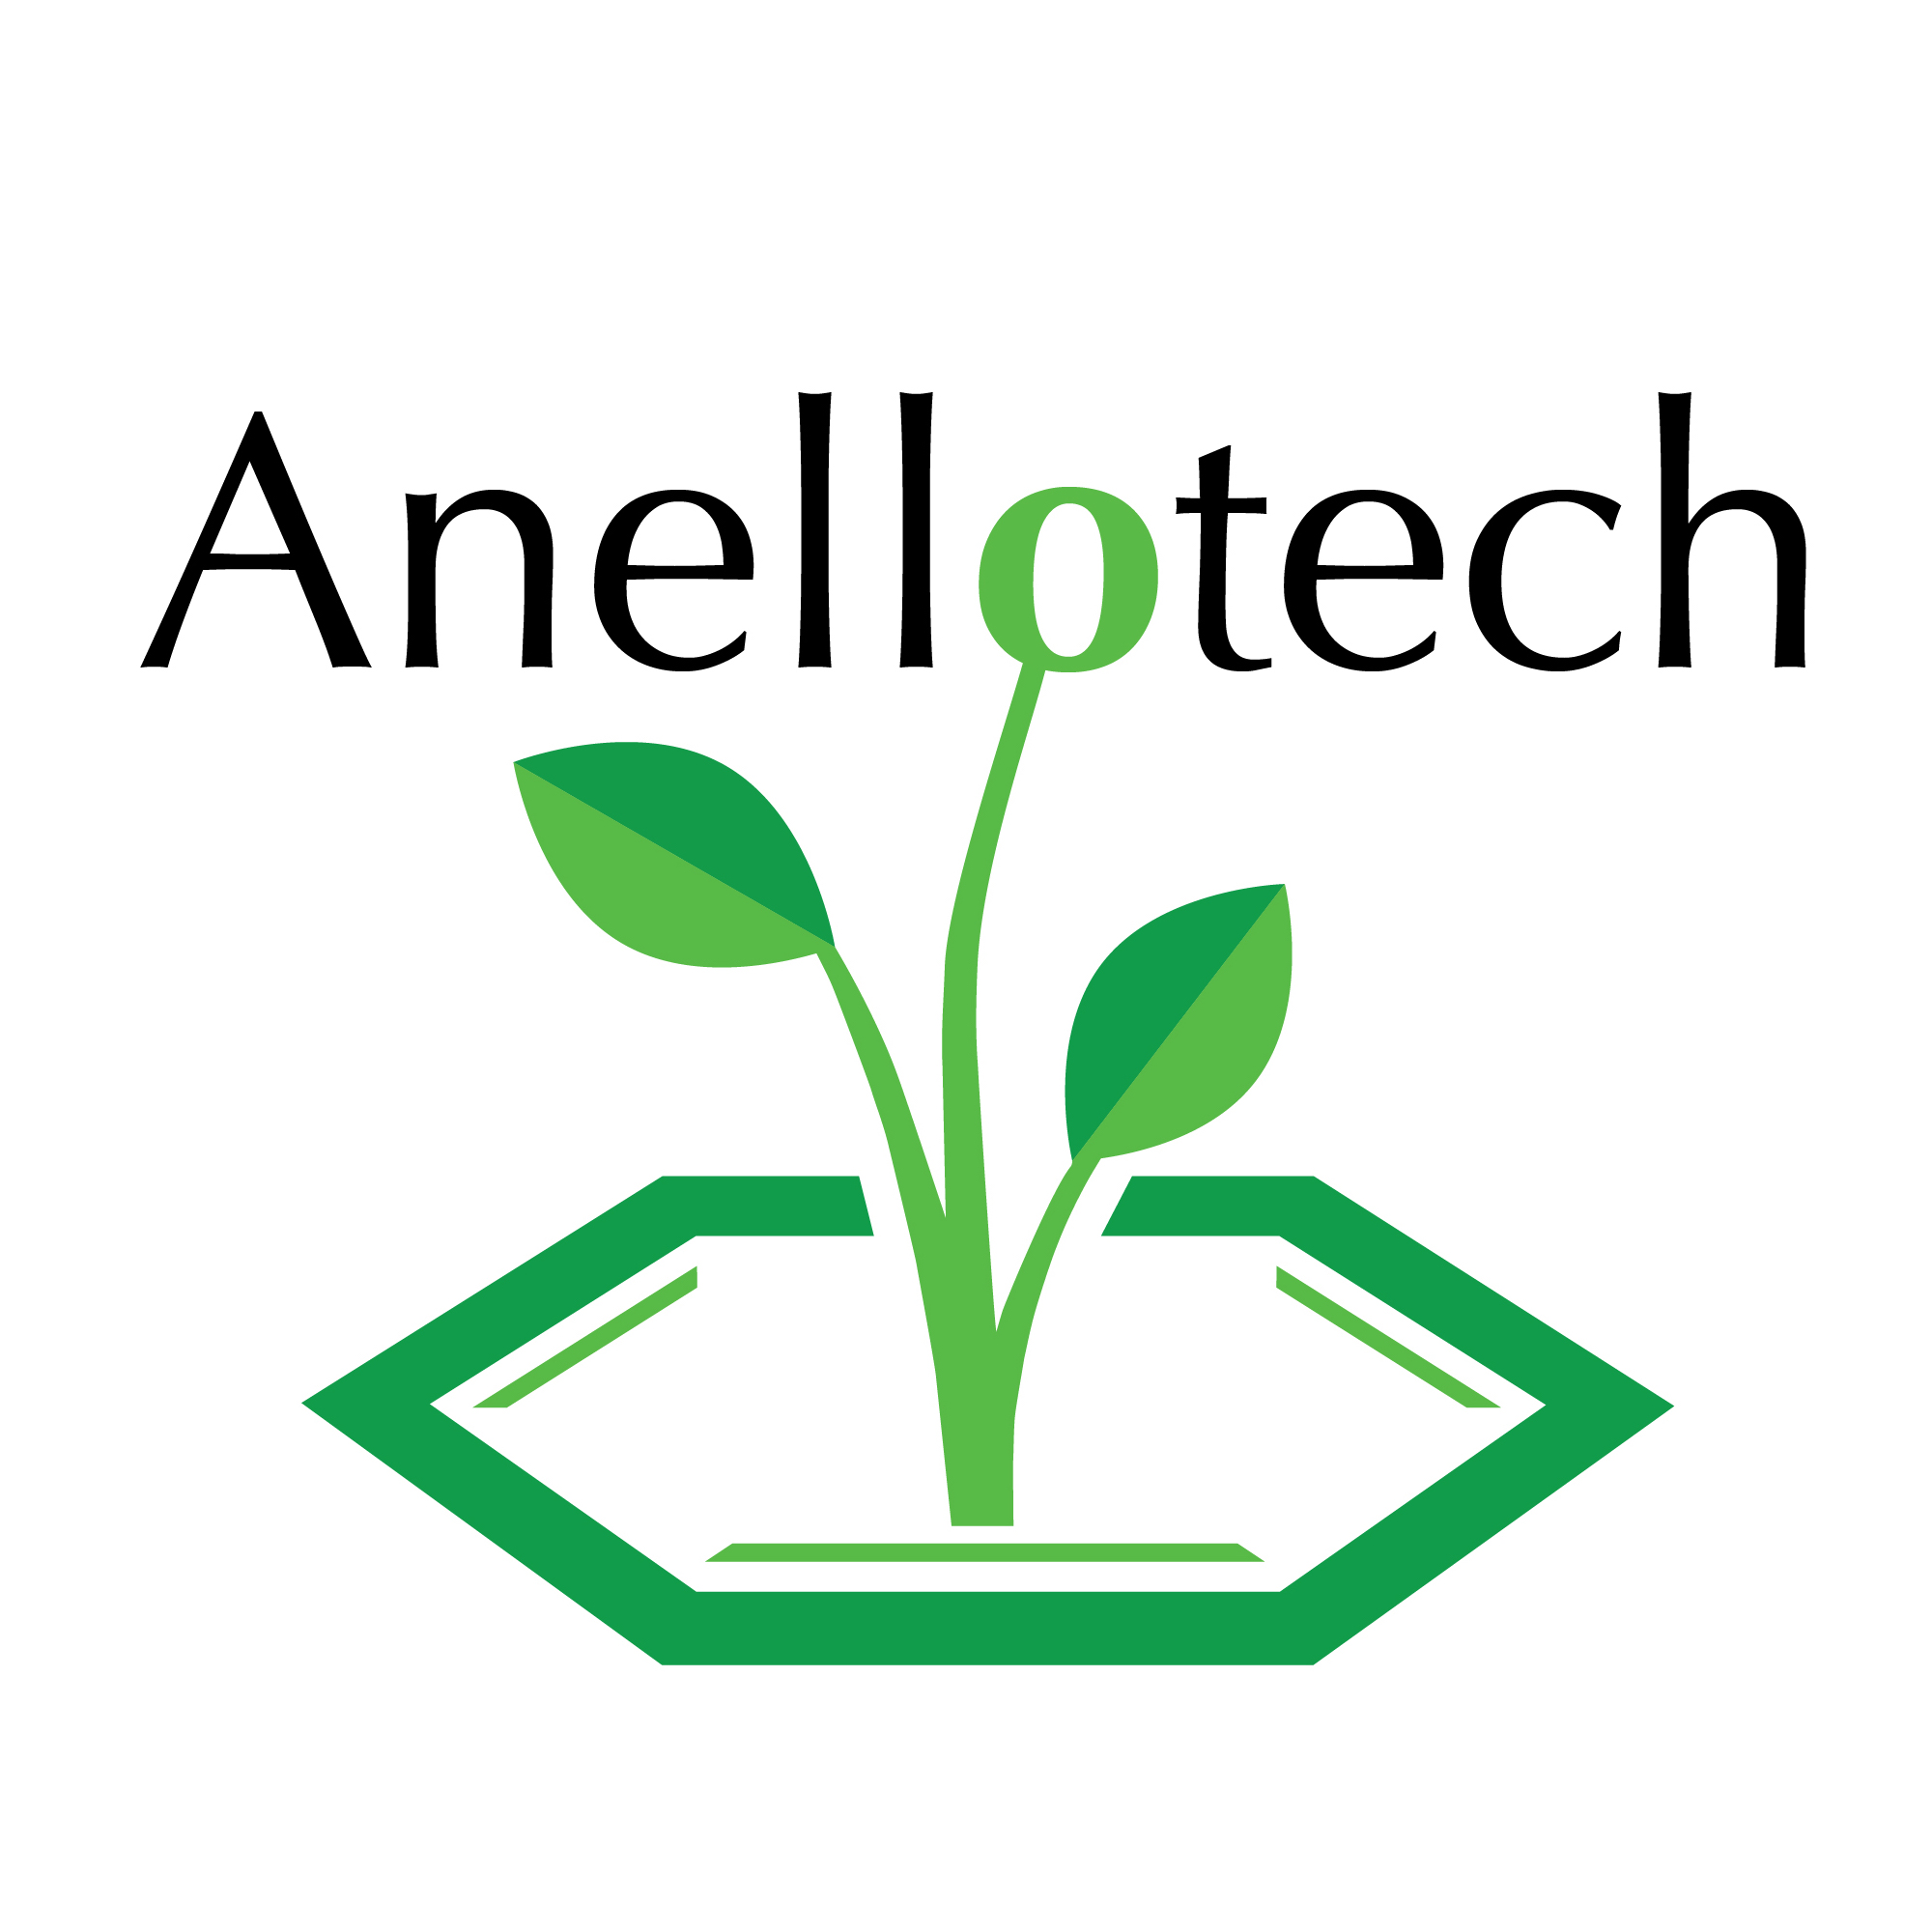 Anellotech Press Release 16 October 2018 - New Technology Advances Lead Anellotech to Announce Commercial Plant Engineering Plans